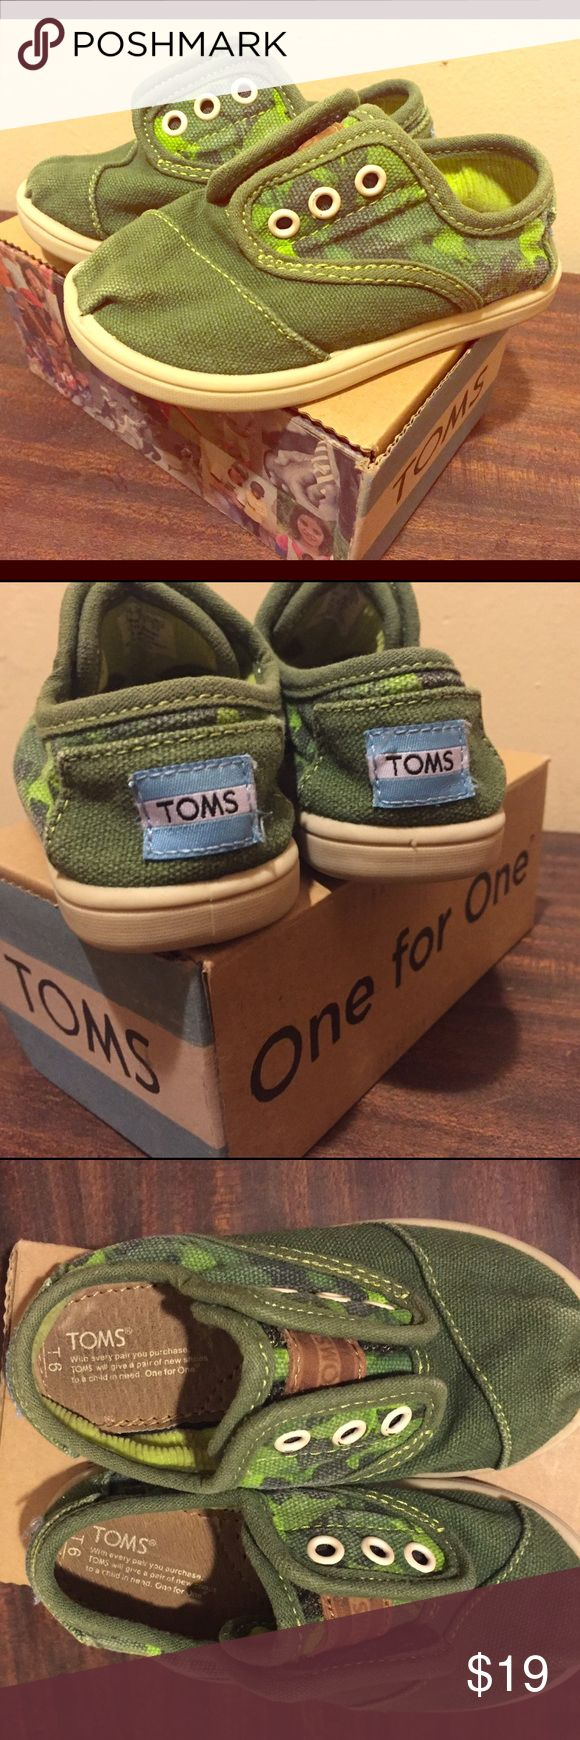 TOMS camo green toddlers shoes size 6 In good used condition, green camo. Cute toddler size 6. Has Velcro closure on top. Comes with box. Toms Shoes